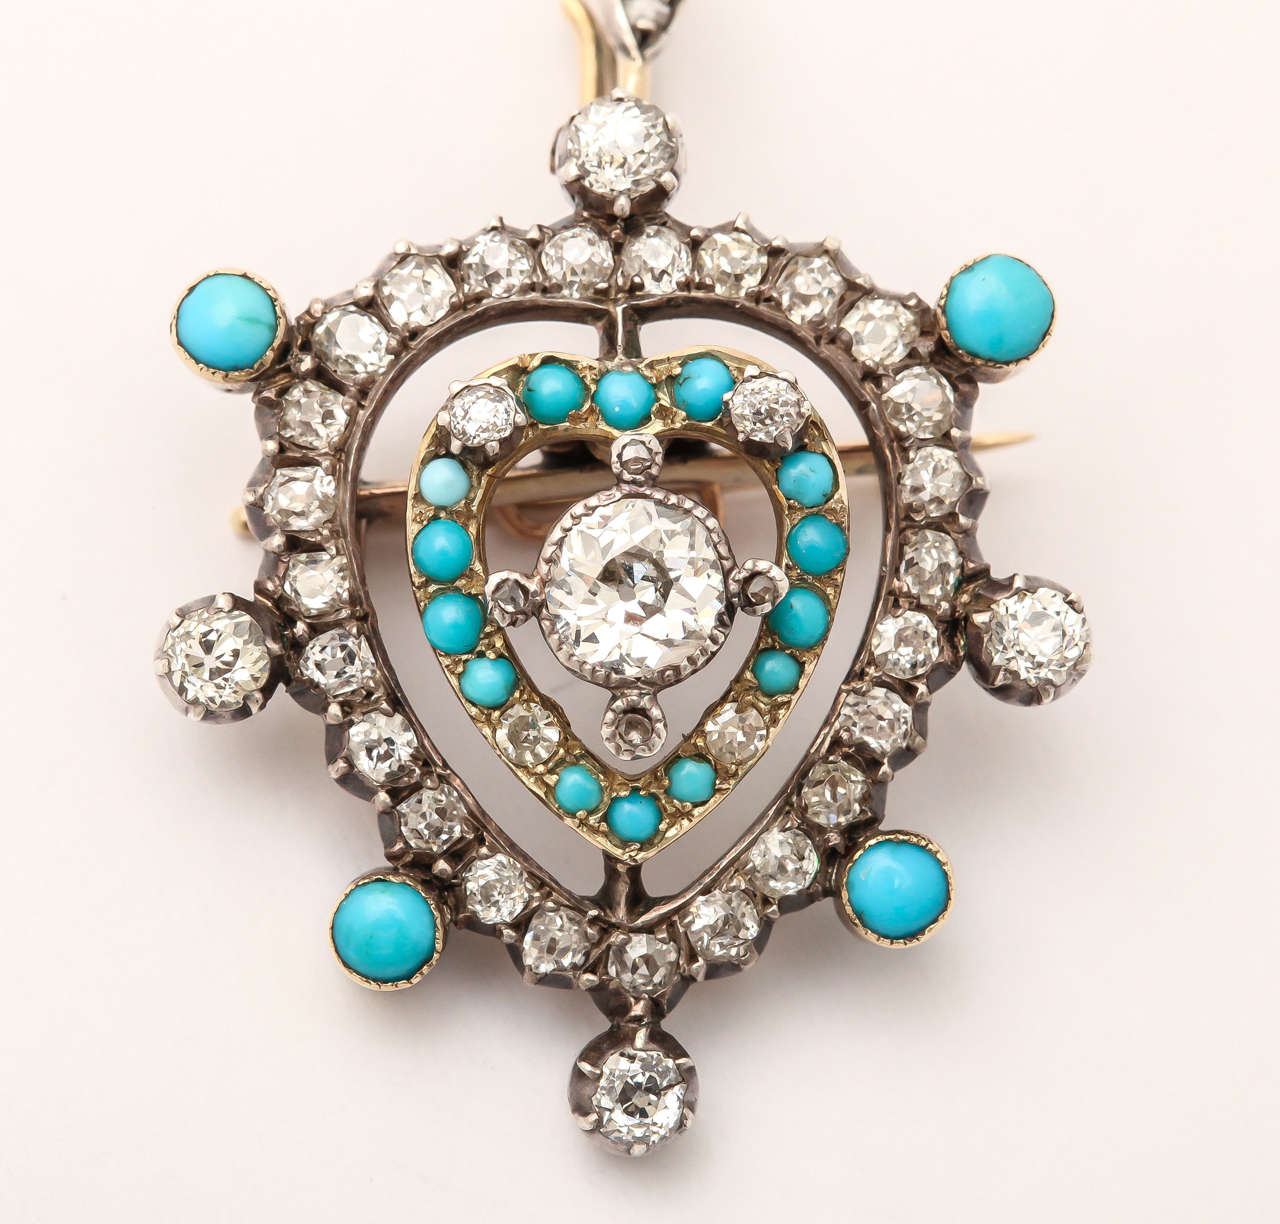 Edwardian Diamond Turquoise Heart Pendant or Brooch 4